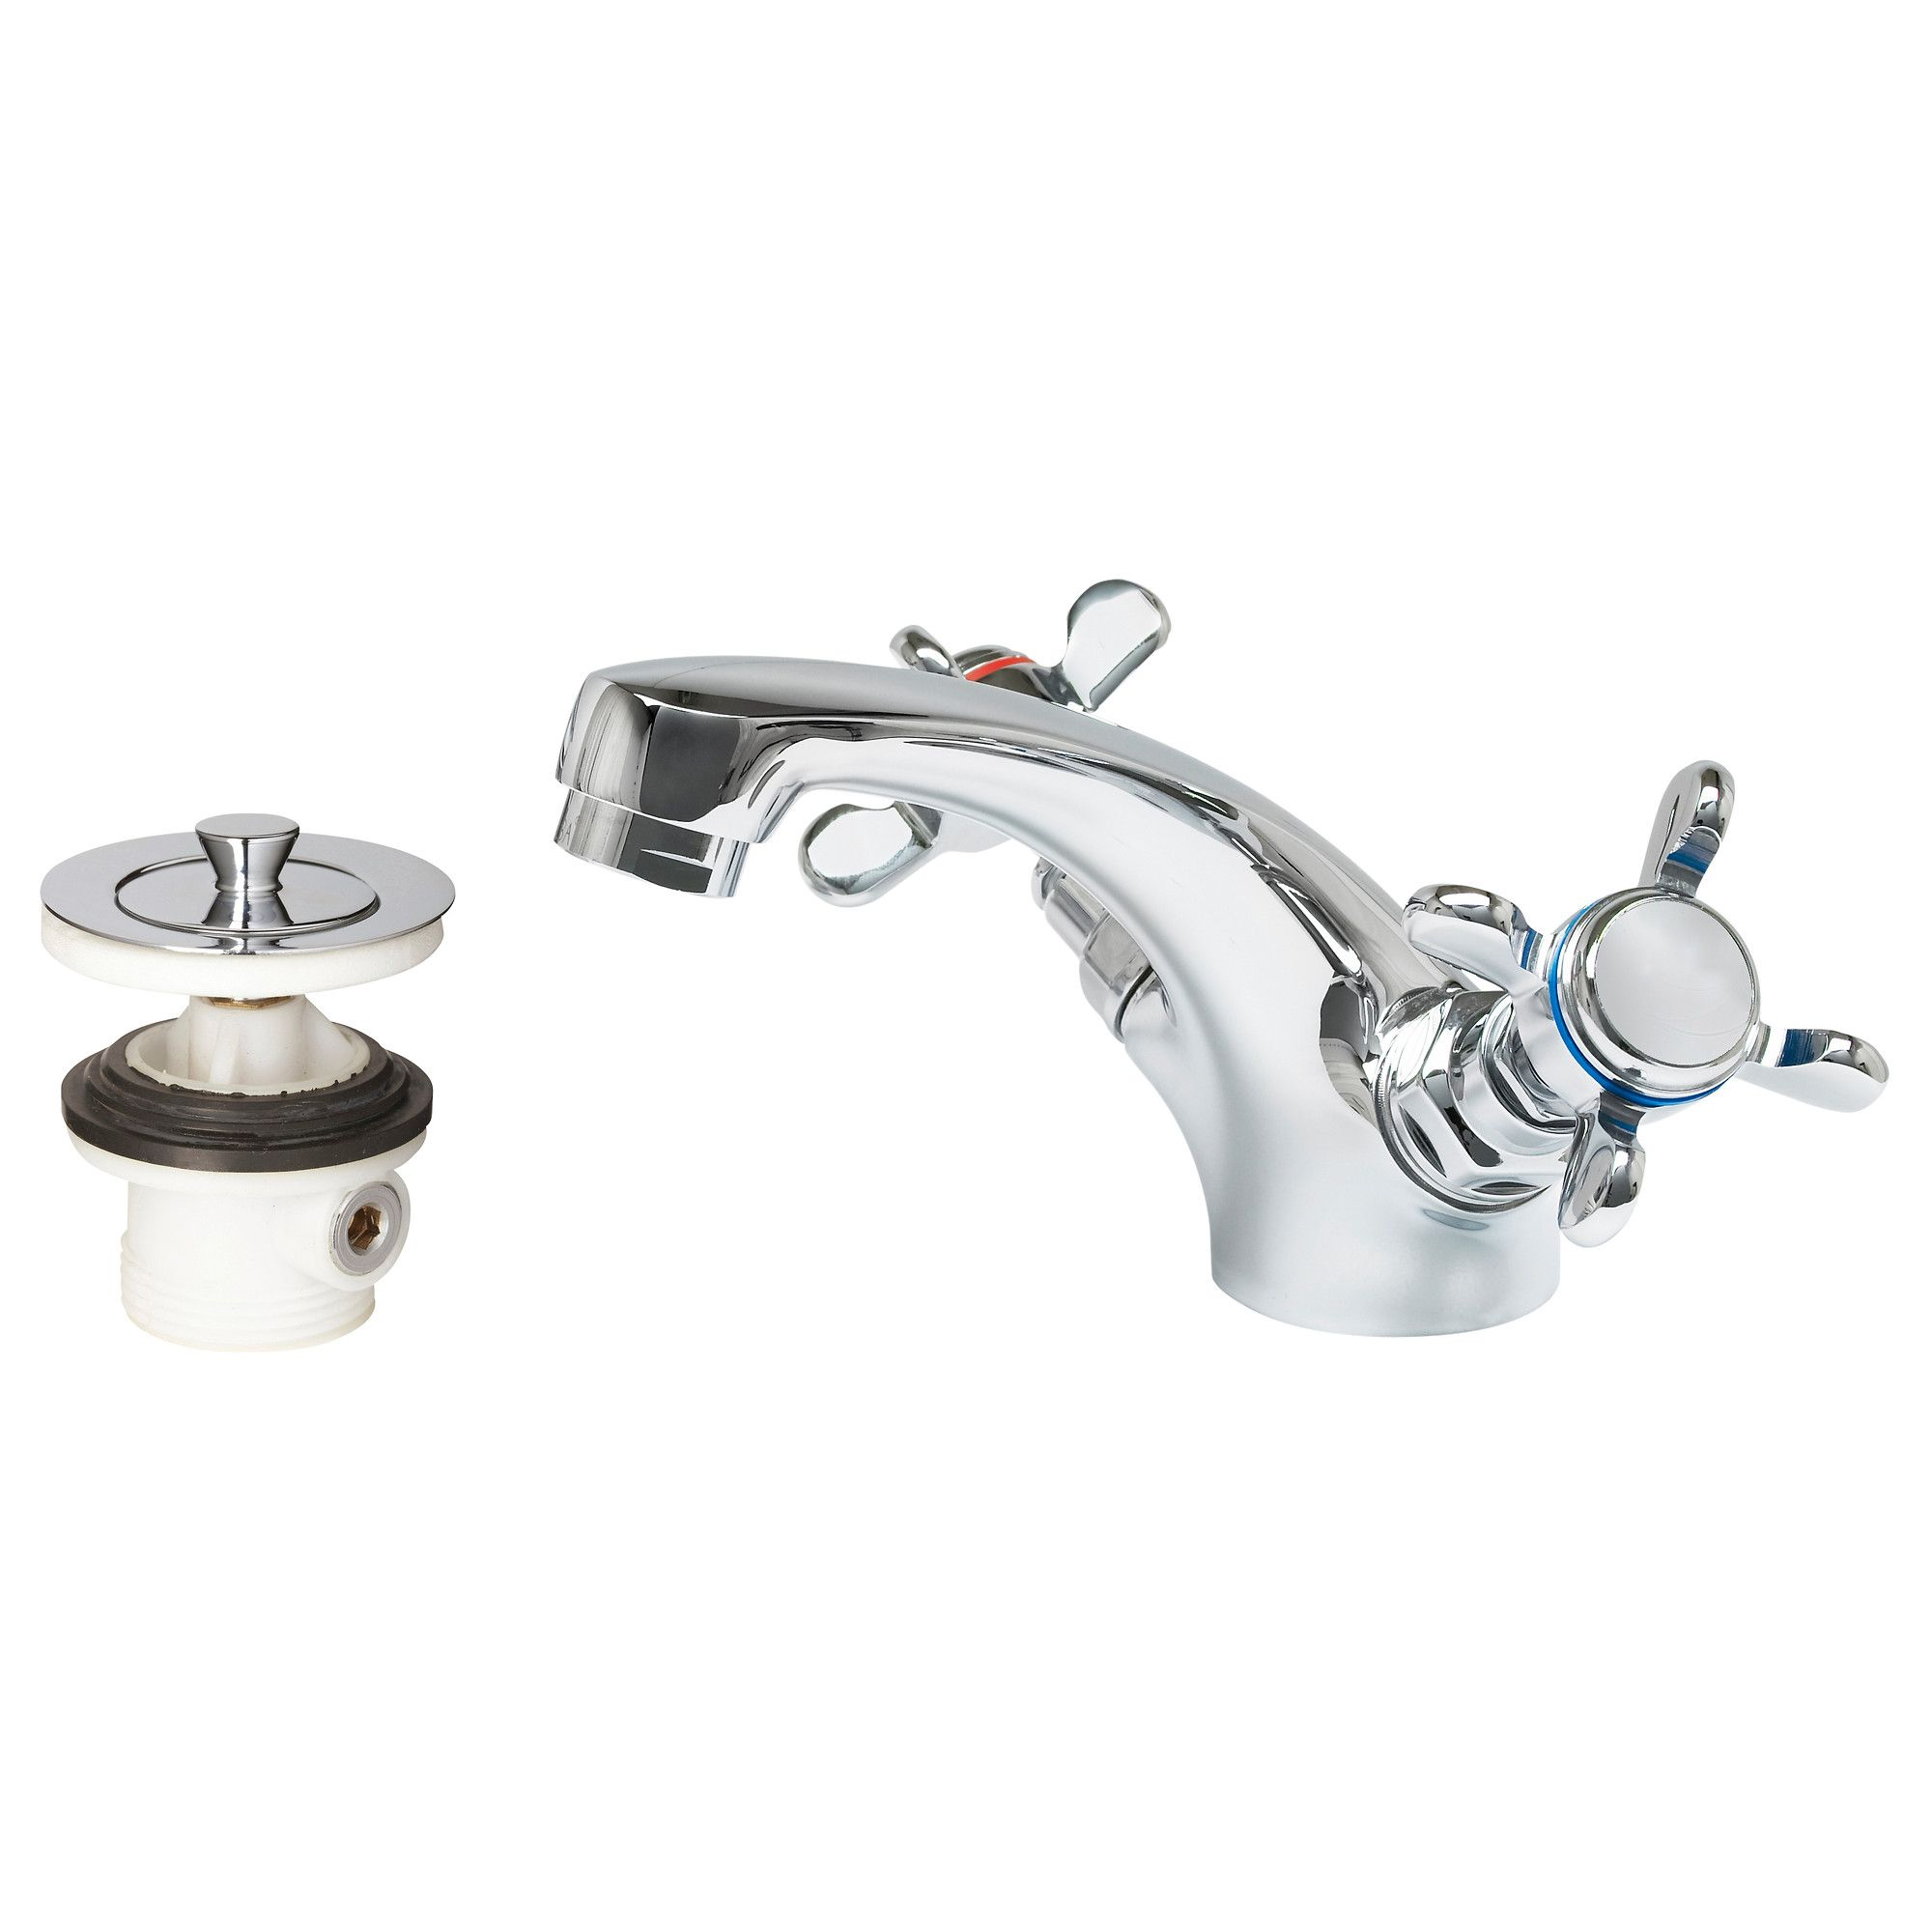 apelskr sink faucet with strainer ikea - Ikea Bathroom Faucets